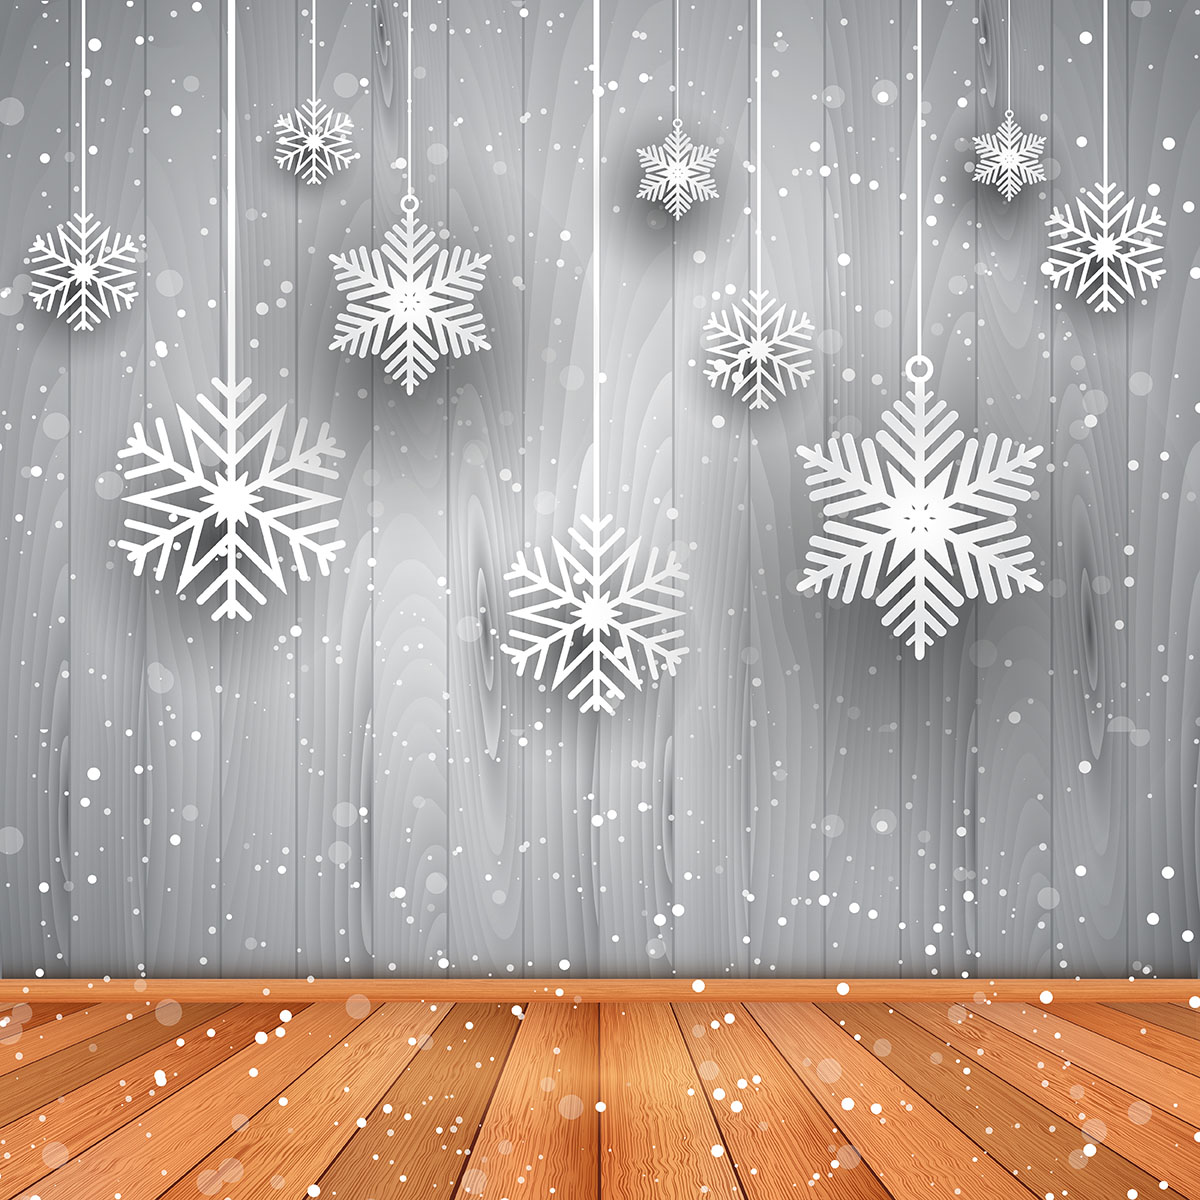 Christmas background of hanging snowflakes - Download Free ...